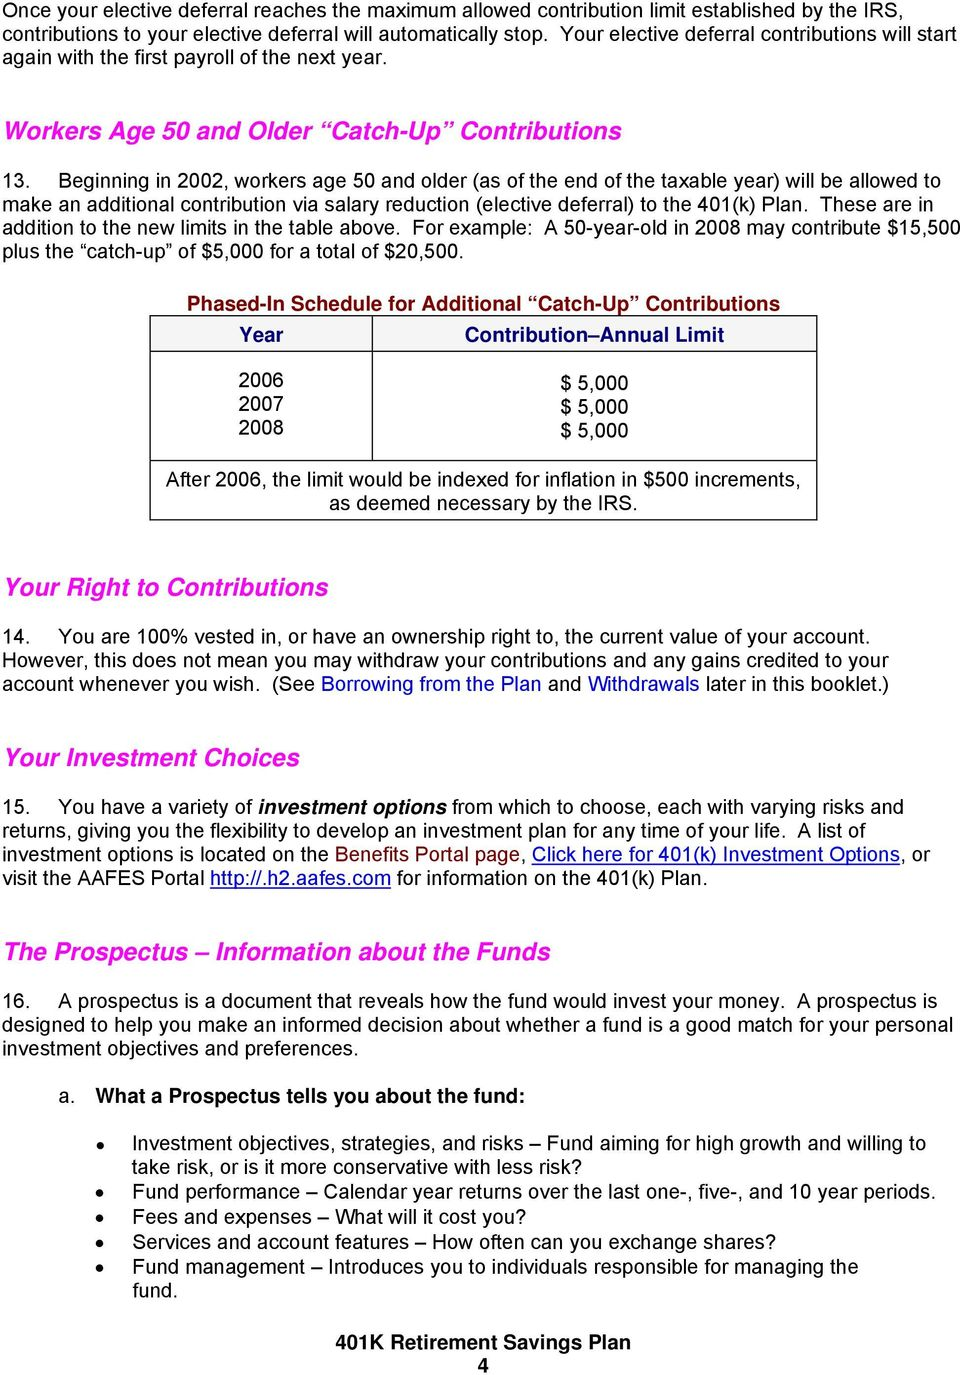 401(k) Retirement Savings Plan  For Employees of the Army